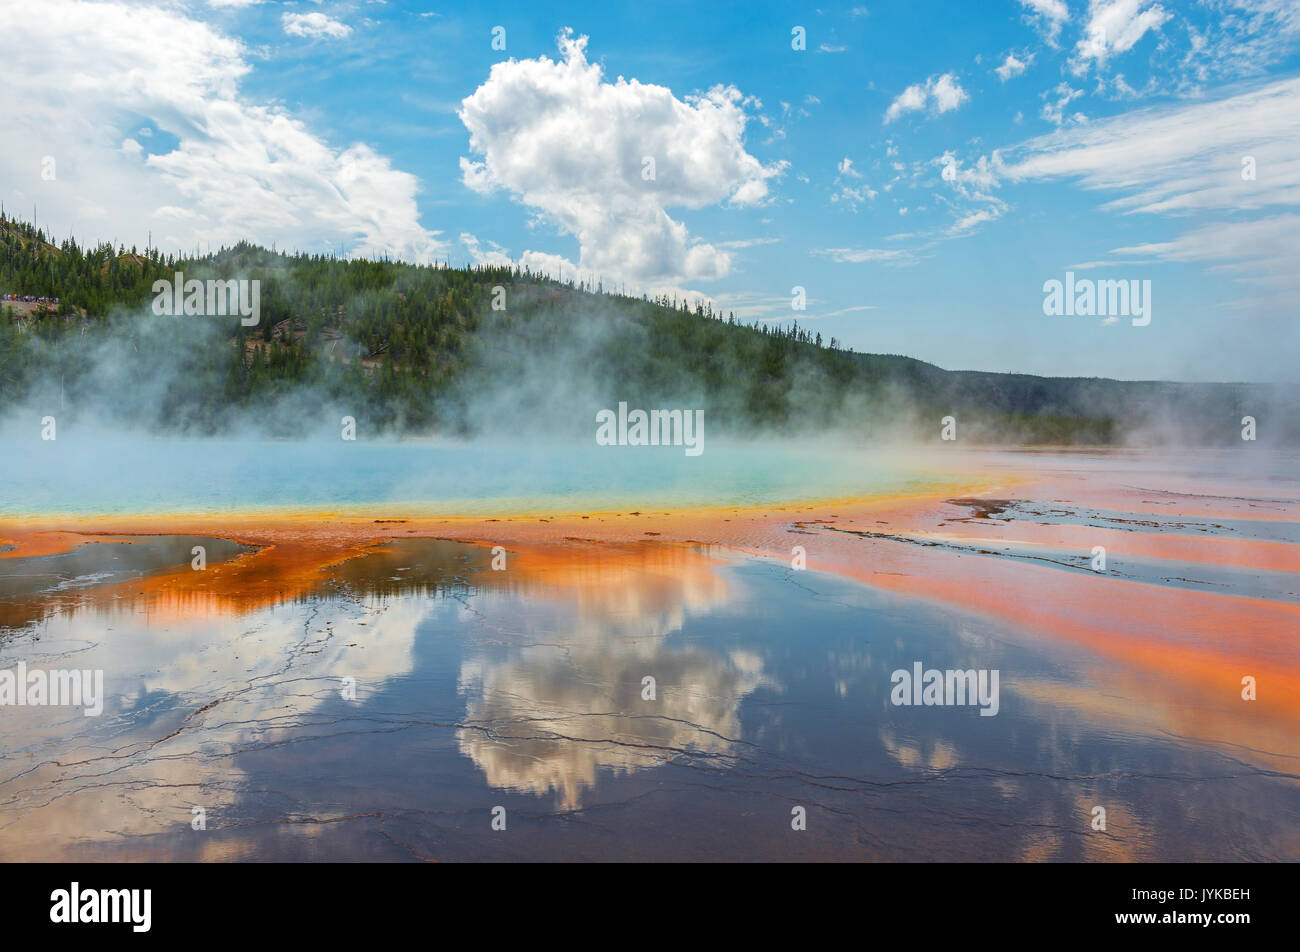 Reflection of clouds on a sunny summer day by the Grand Prismatic Spring inside Yellowstone National Park, Wyoming, USA. - Stock Image